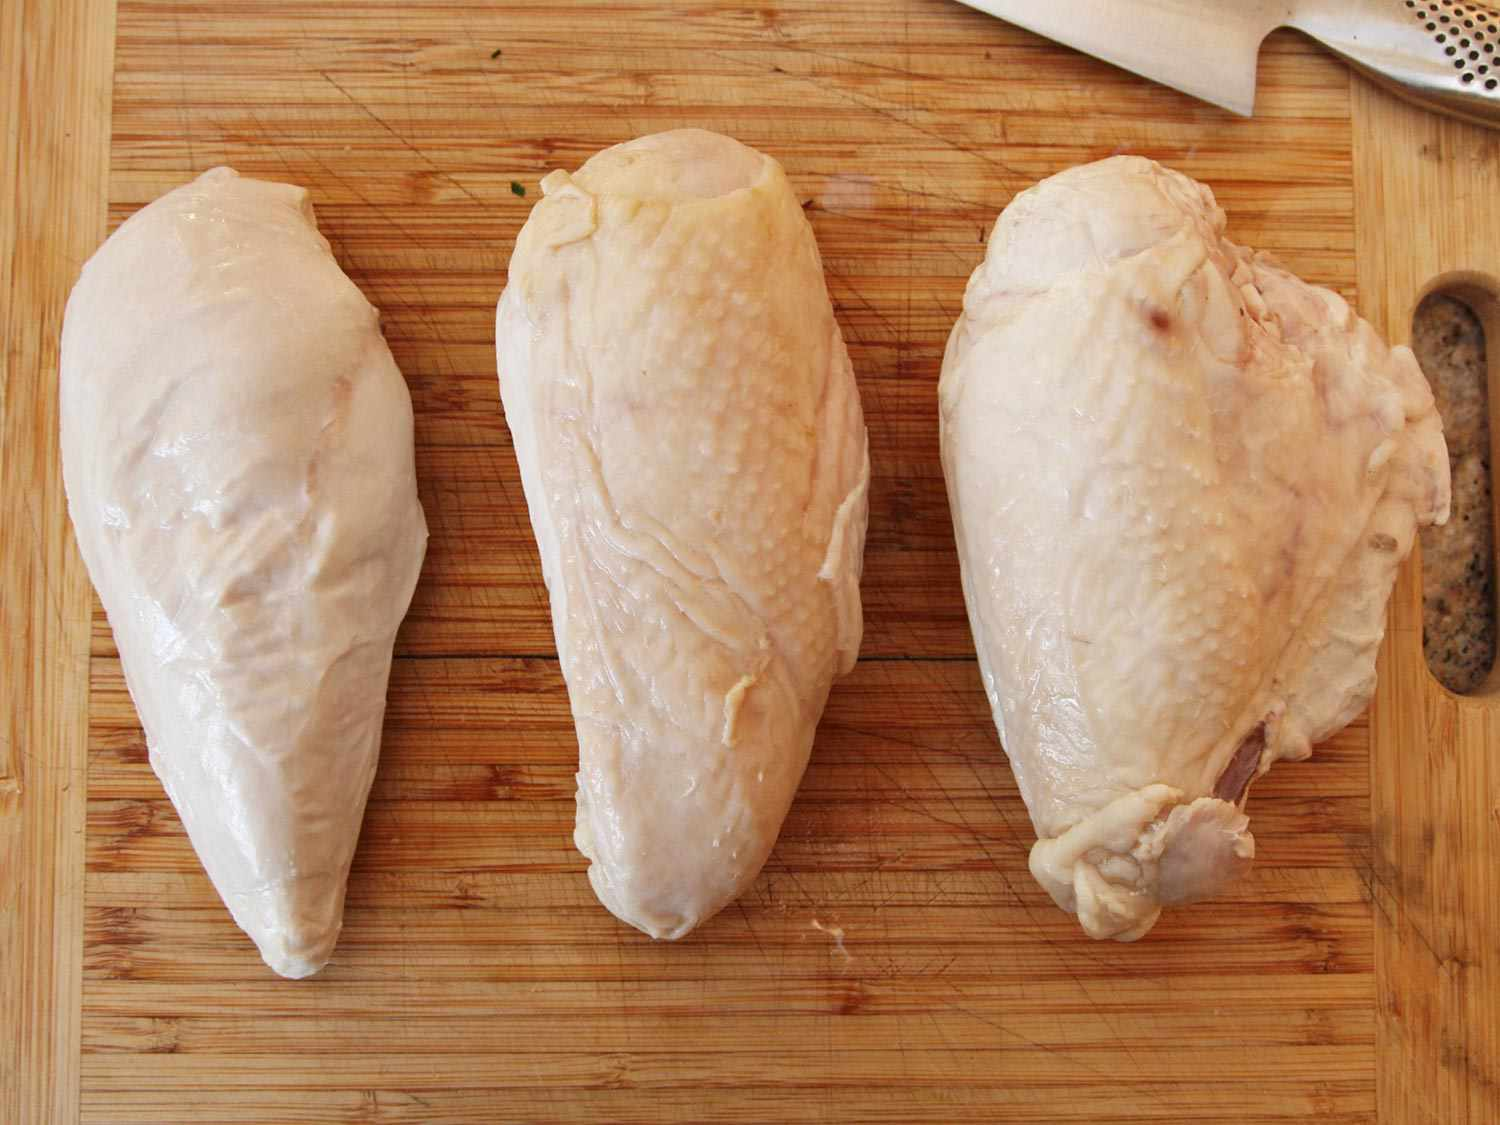 Three chicken breasts: one skin-off, one skin-on, one skin-on and bone-in